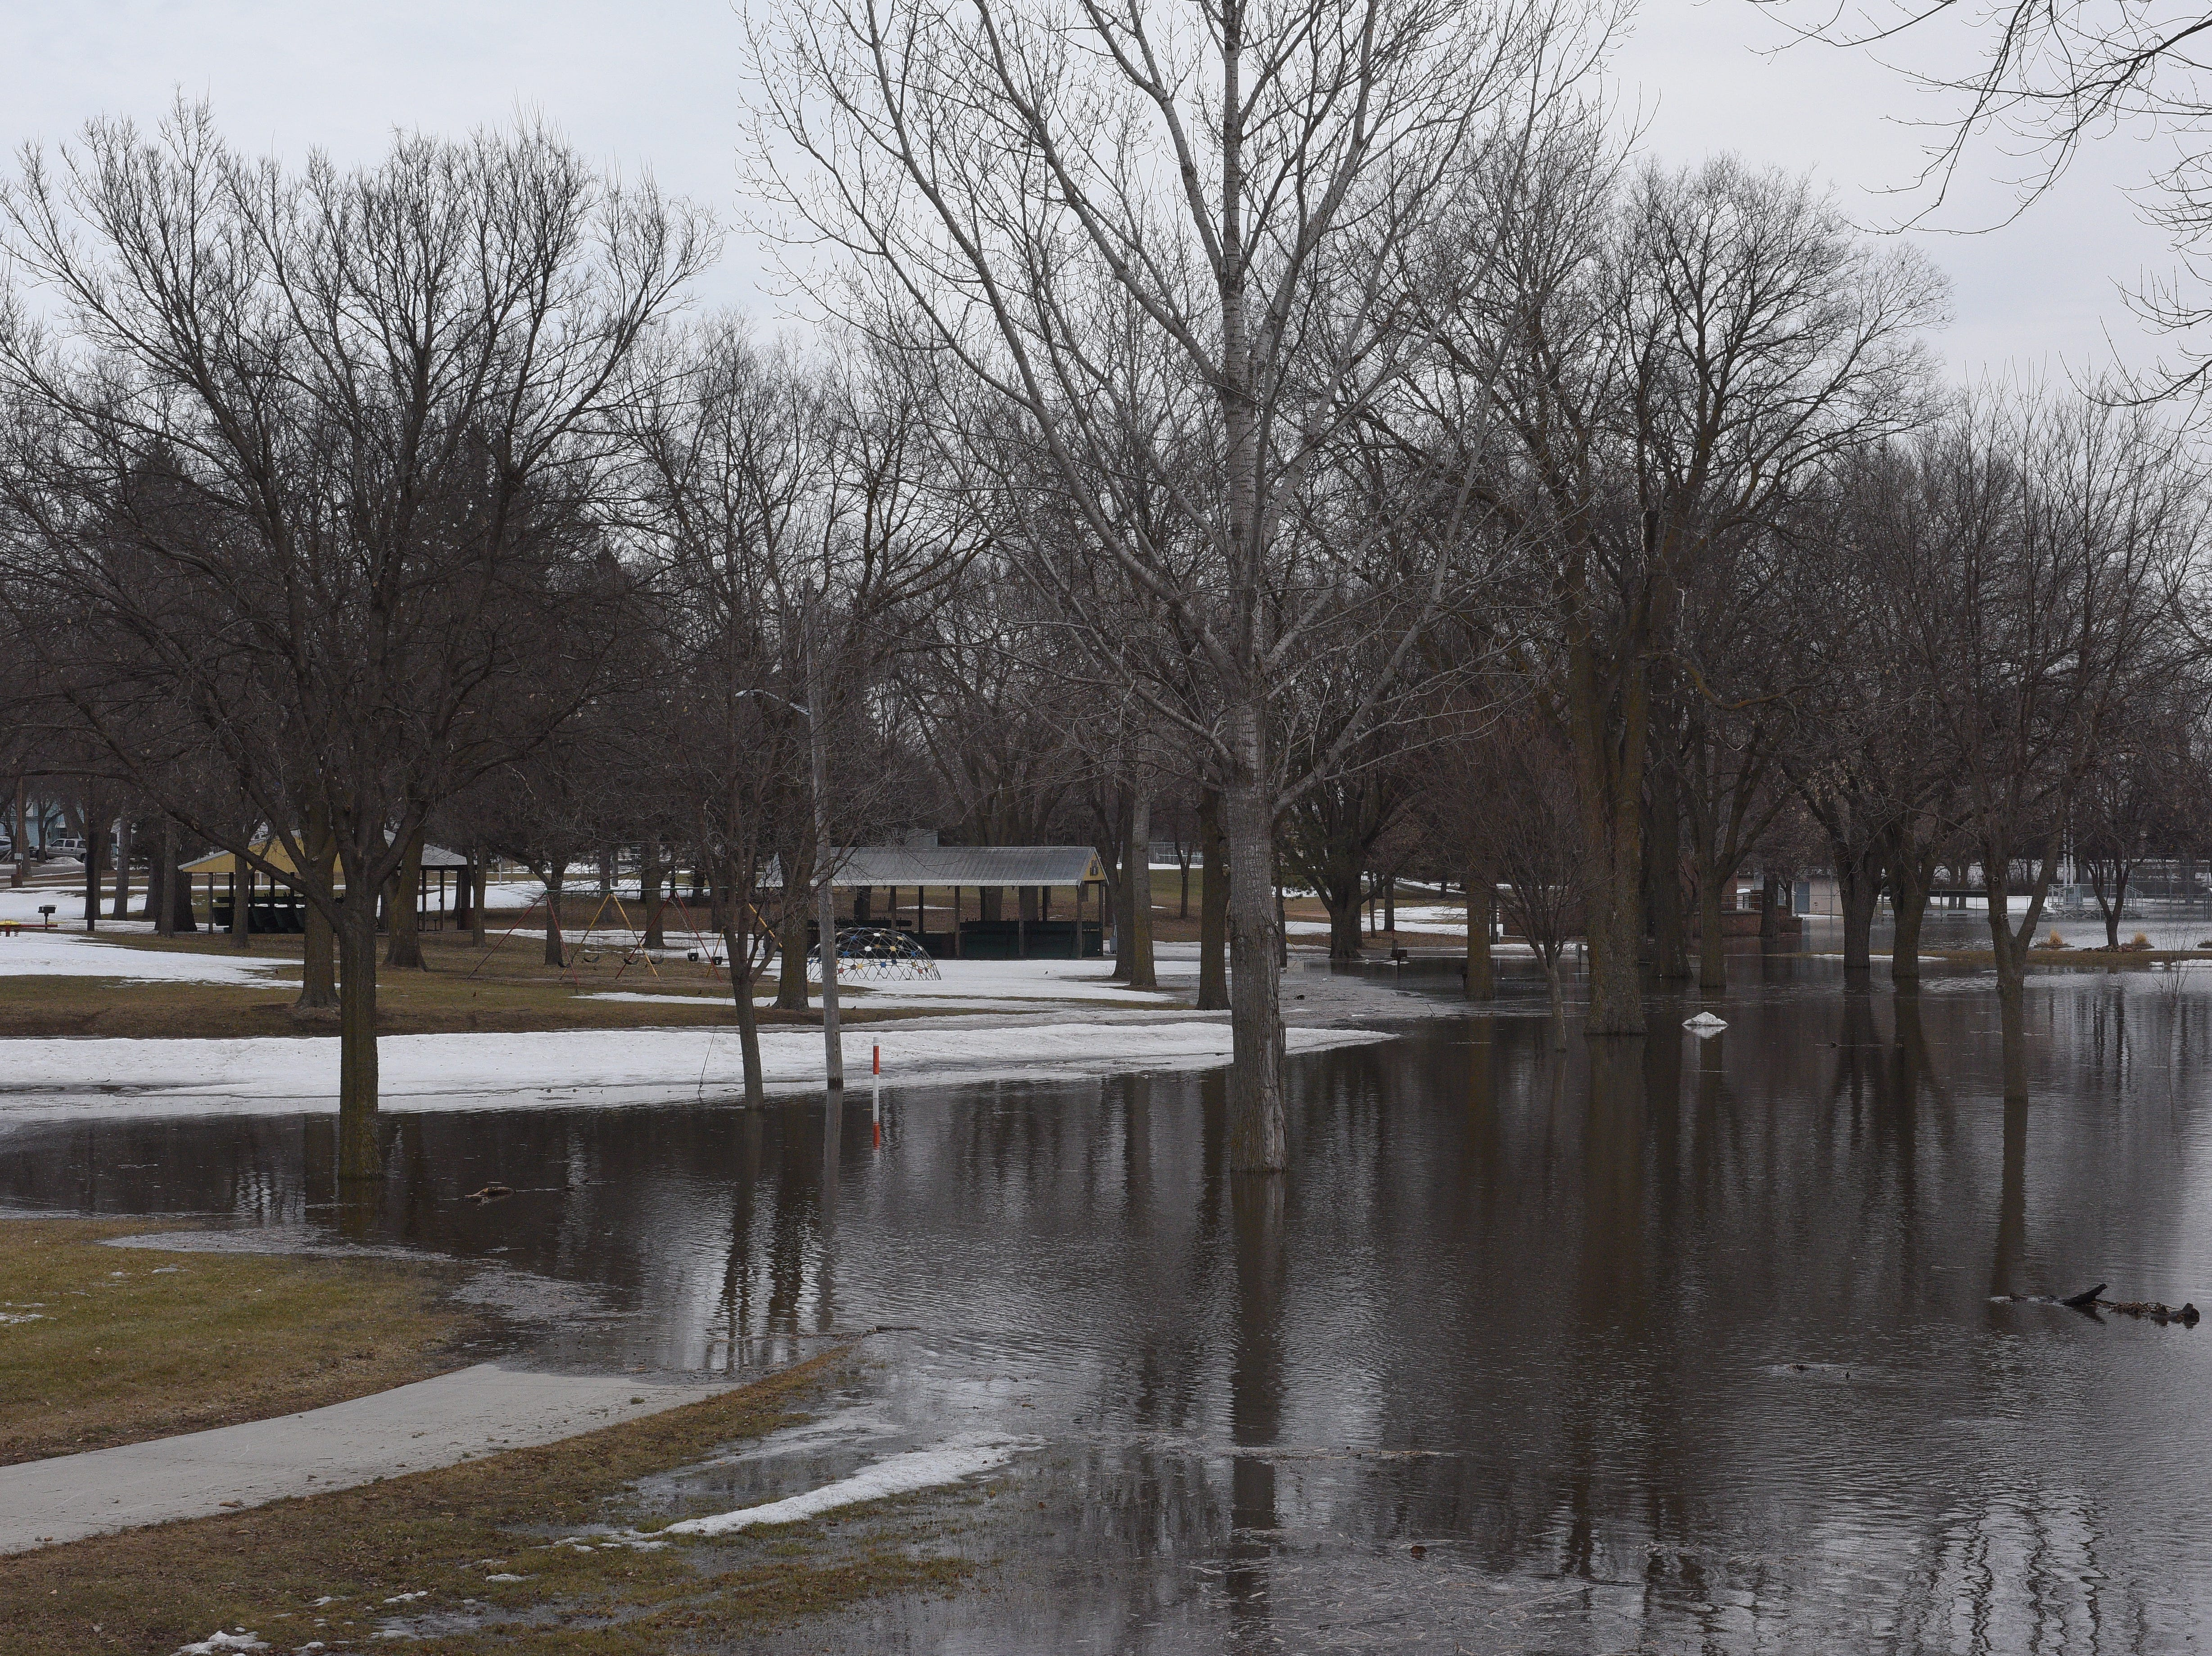 A flooding park in Dell Rapids on March 23, 2019. Significant flooding is expected around the city following near-record river flows.